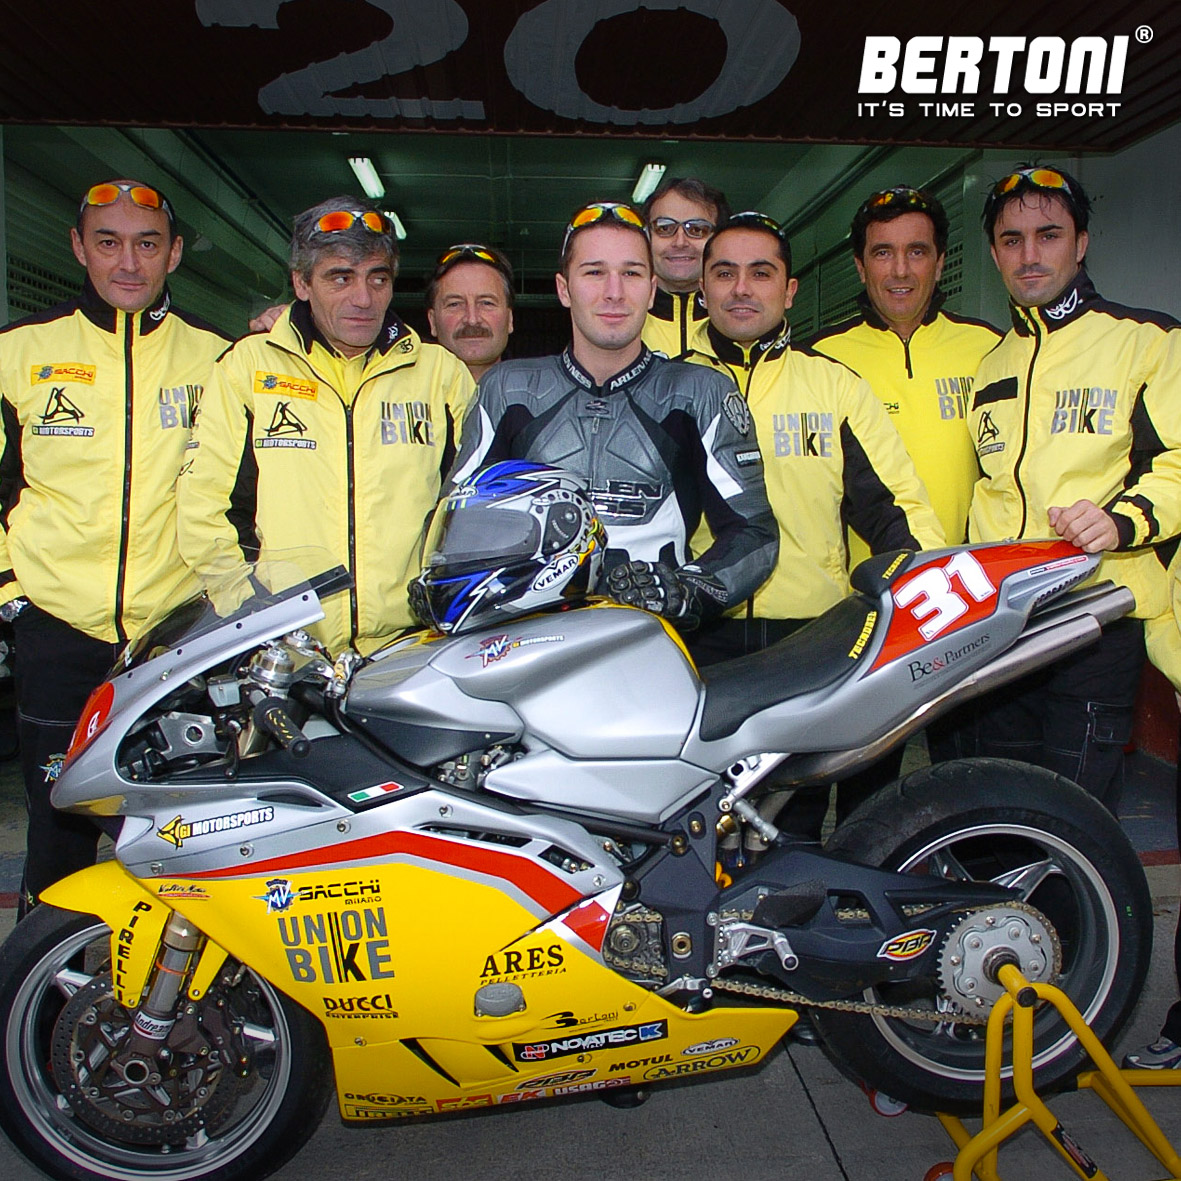 MV Augusta - Union Bike Team